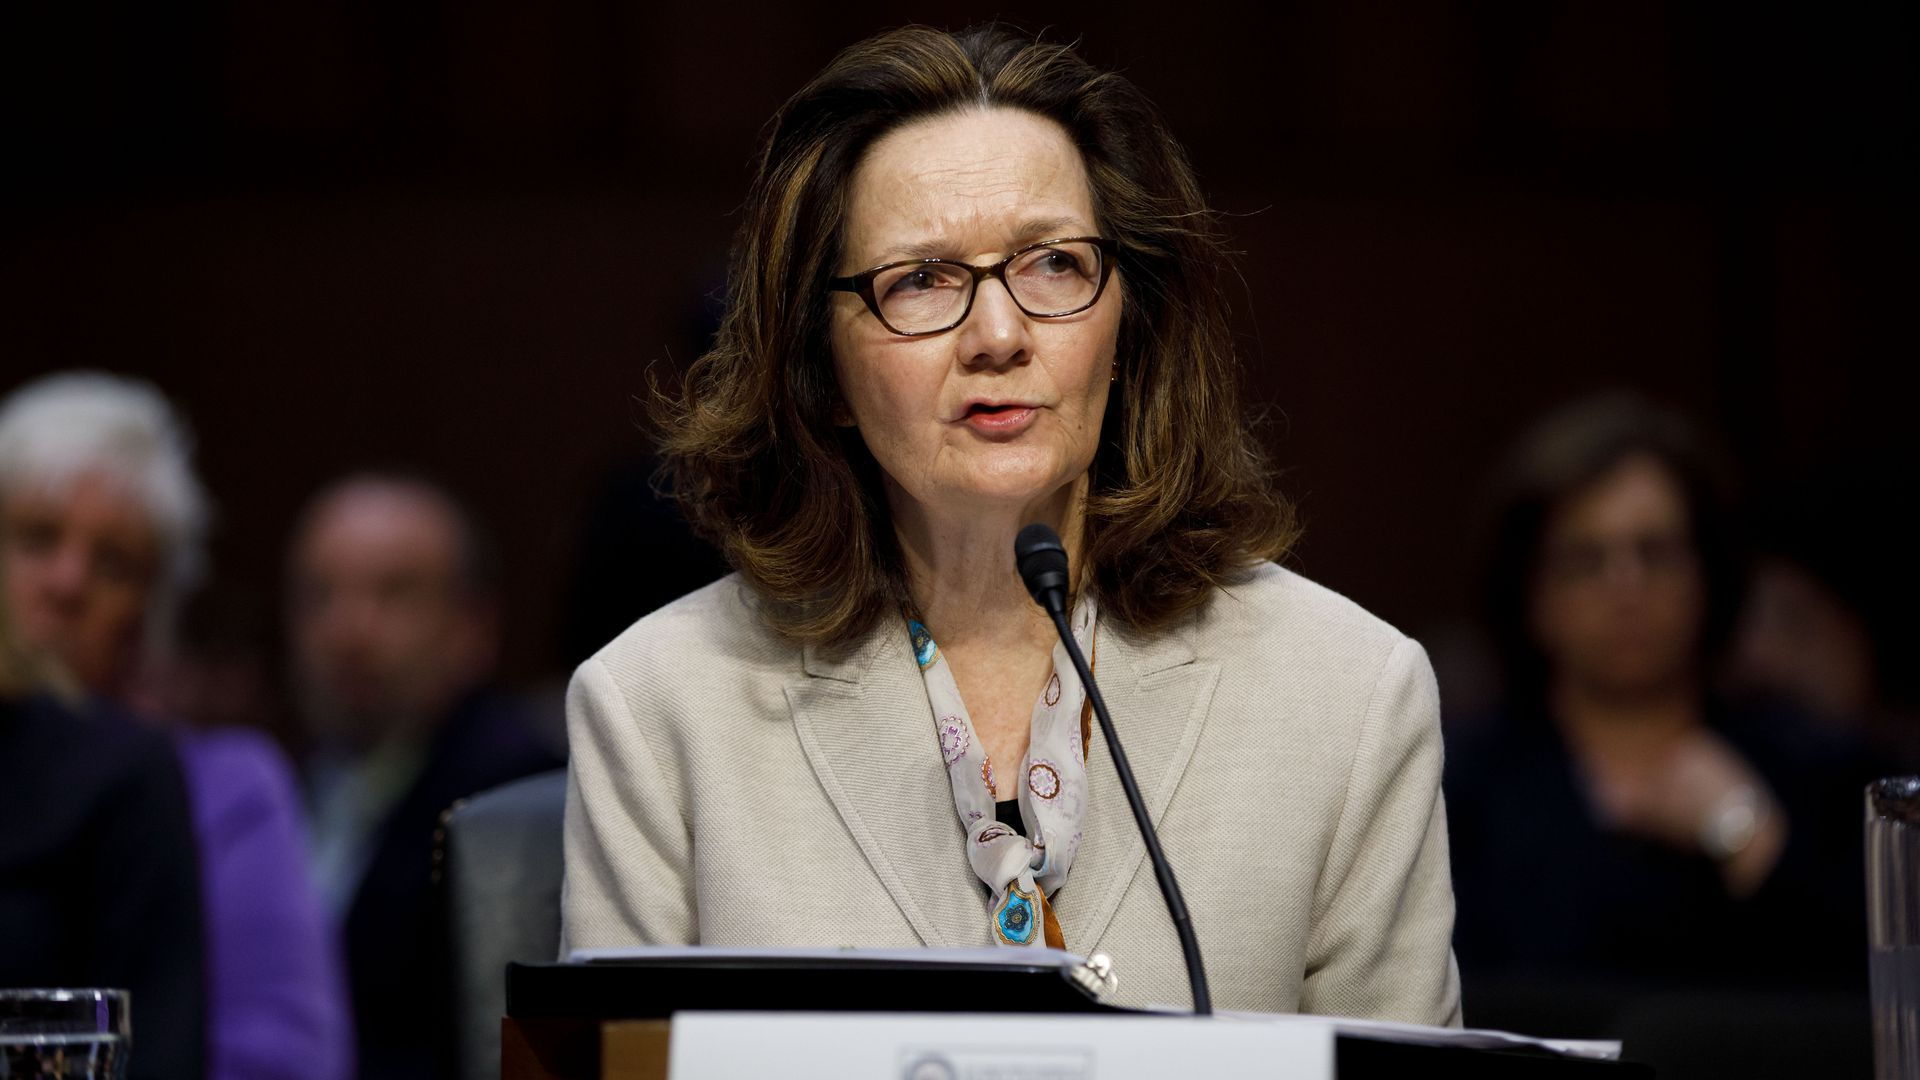 Gina Haspel at her CIA confirmation hearing